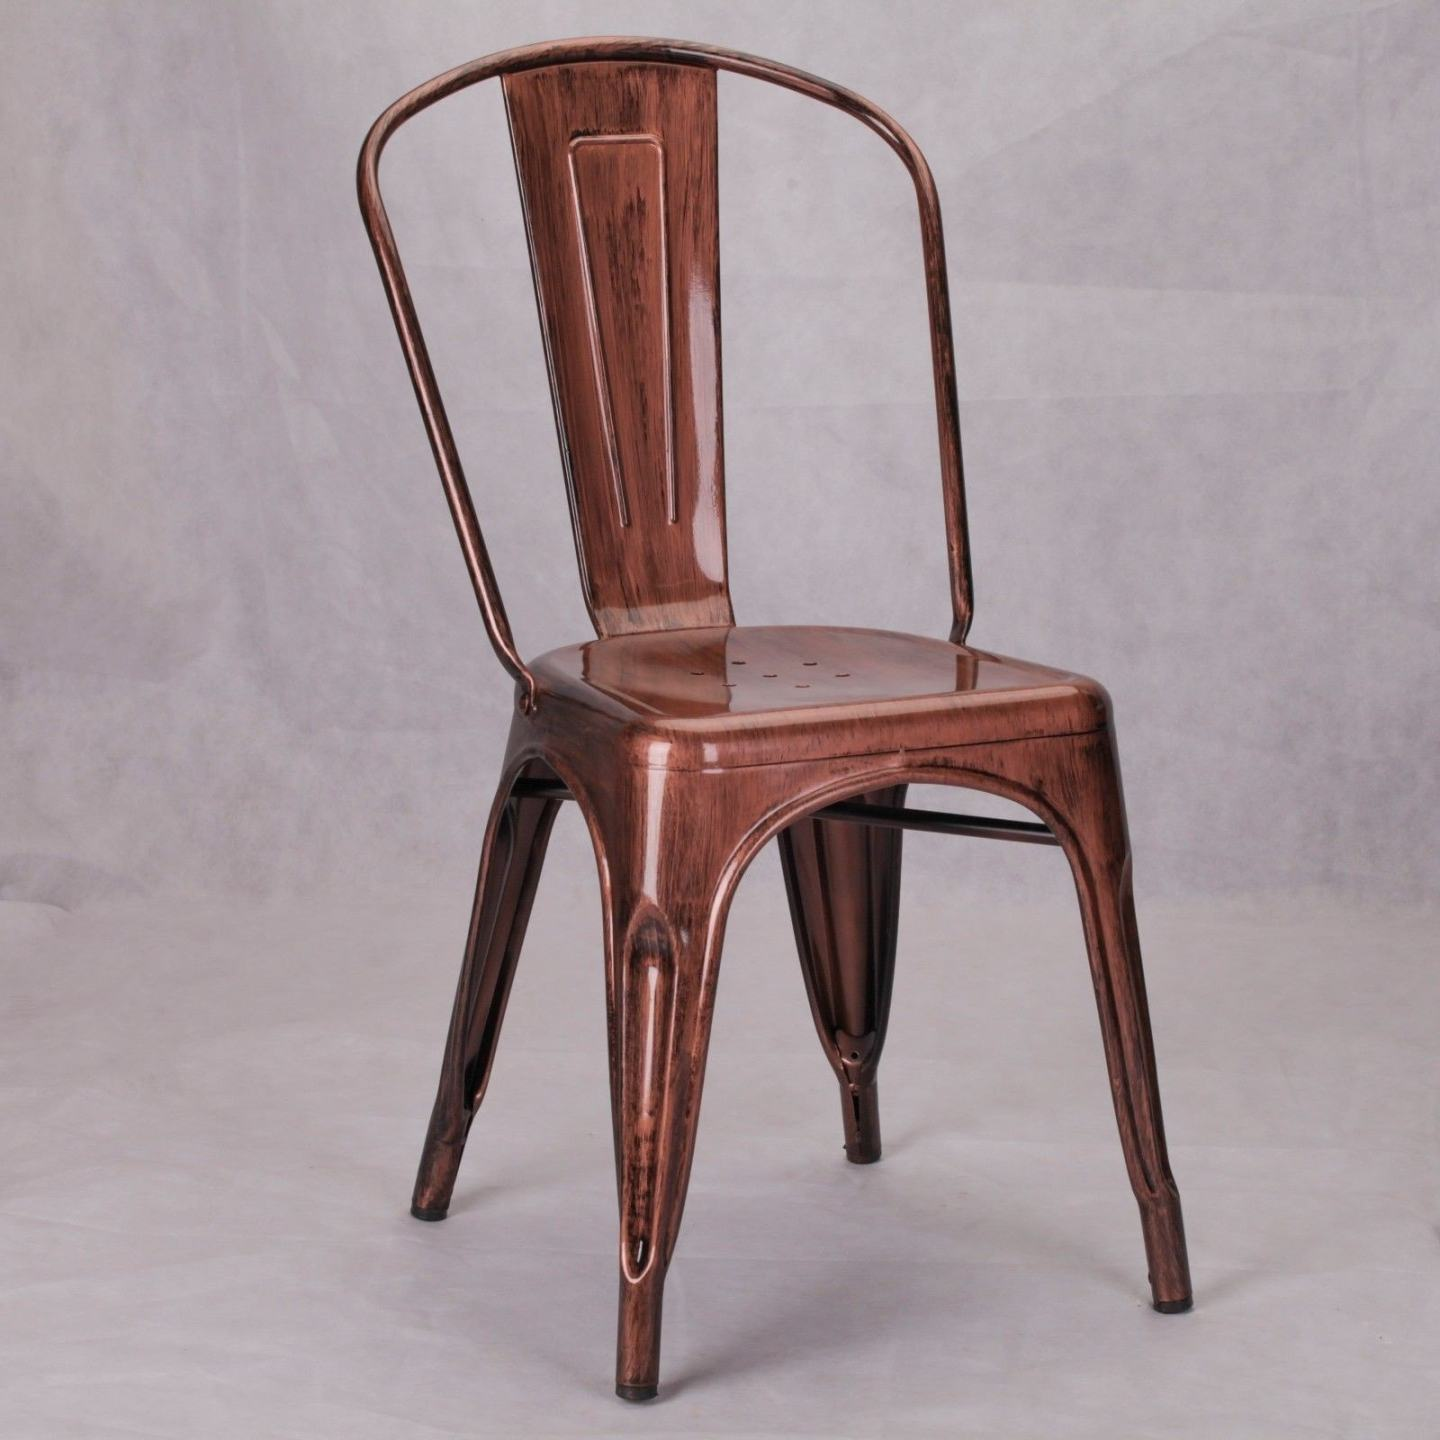 Metal Copper Chair -  www.la-maison-chic.co.uk